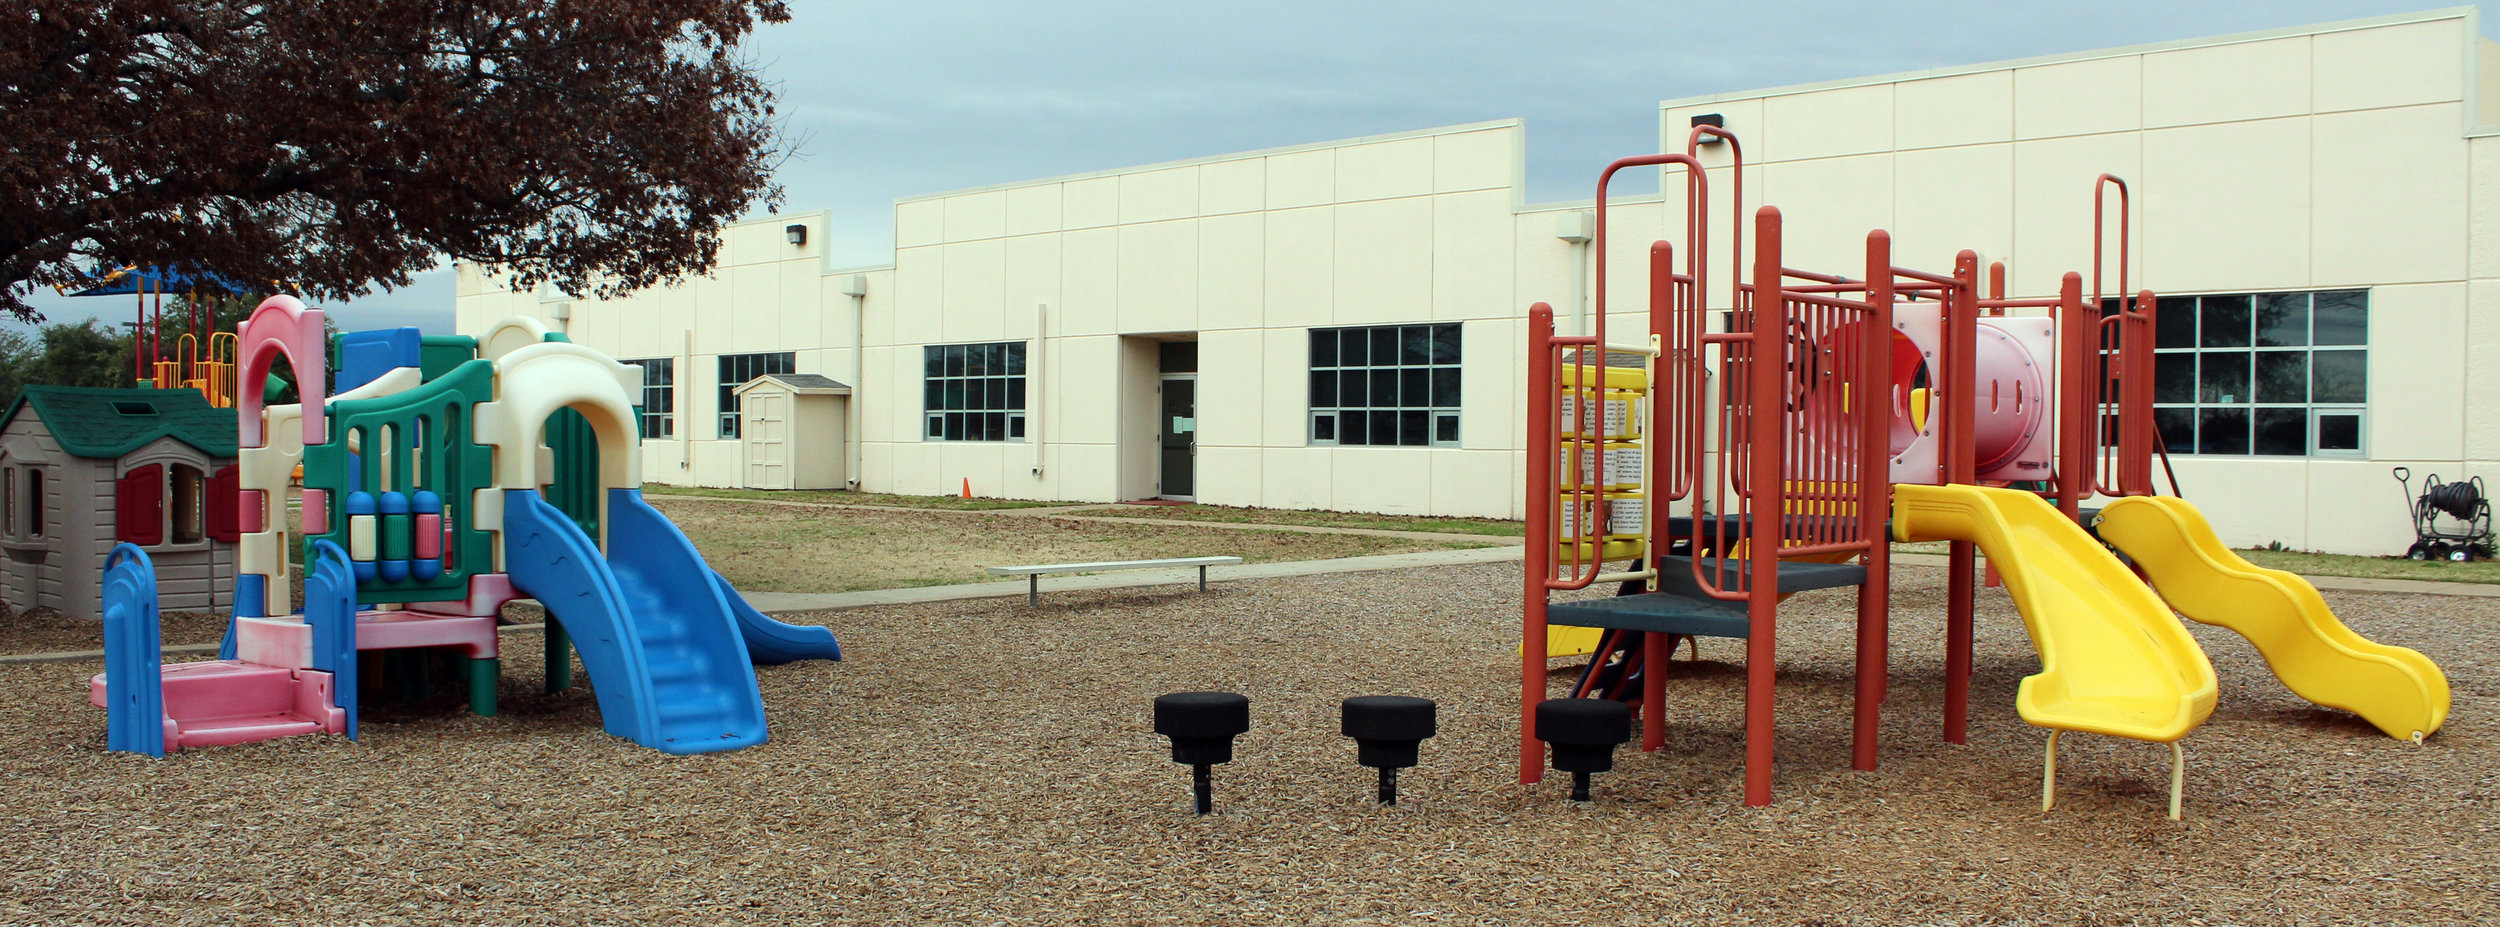 Sunshine & Rainbows Early Learning Center has two playgrounds with age appropriate equipment as well as riding toys.